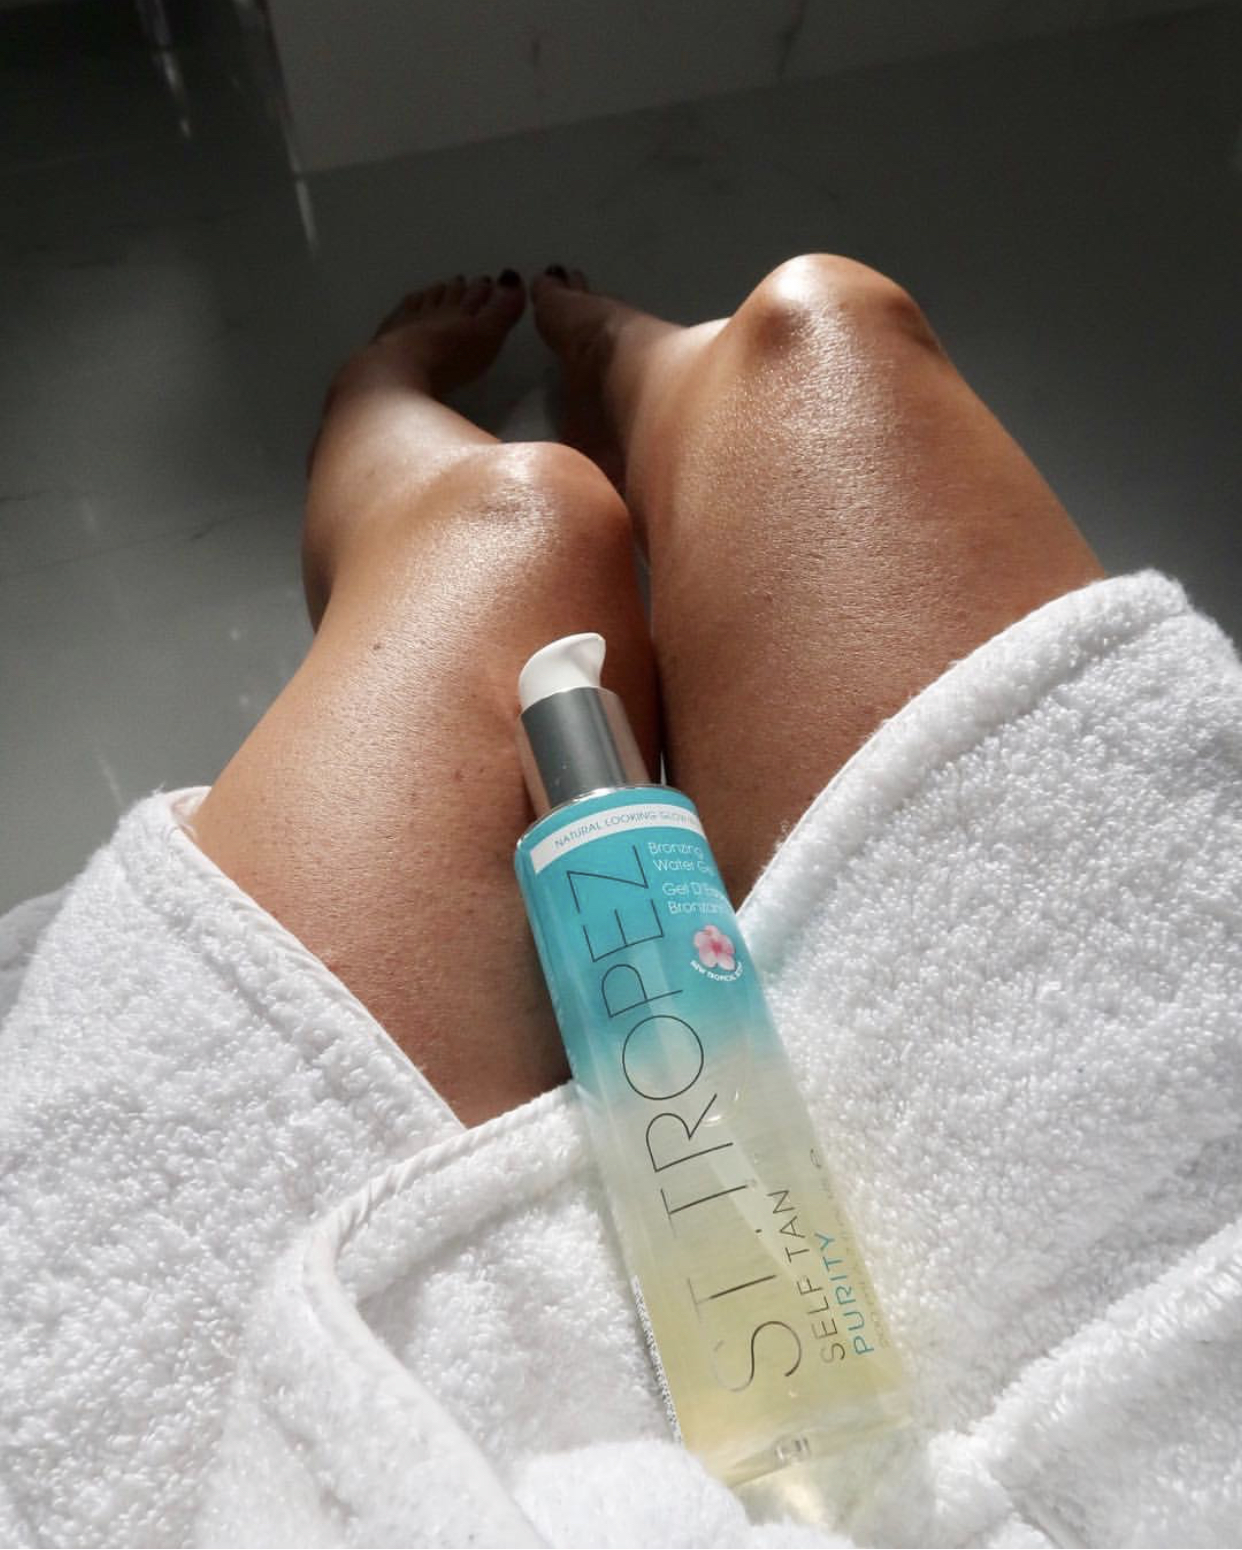 St.Tropez Self Tan Purity Bronzing Water Gel Michaellas Result